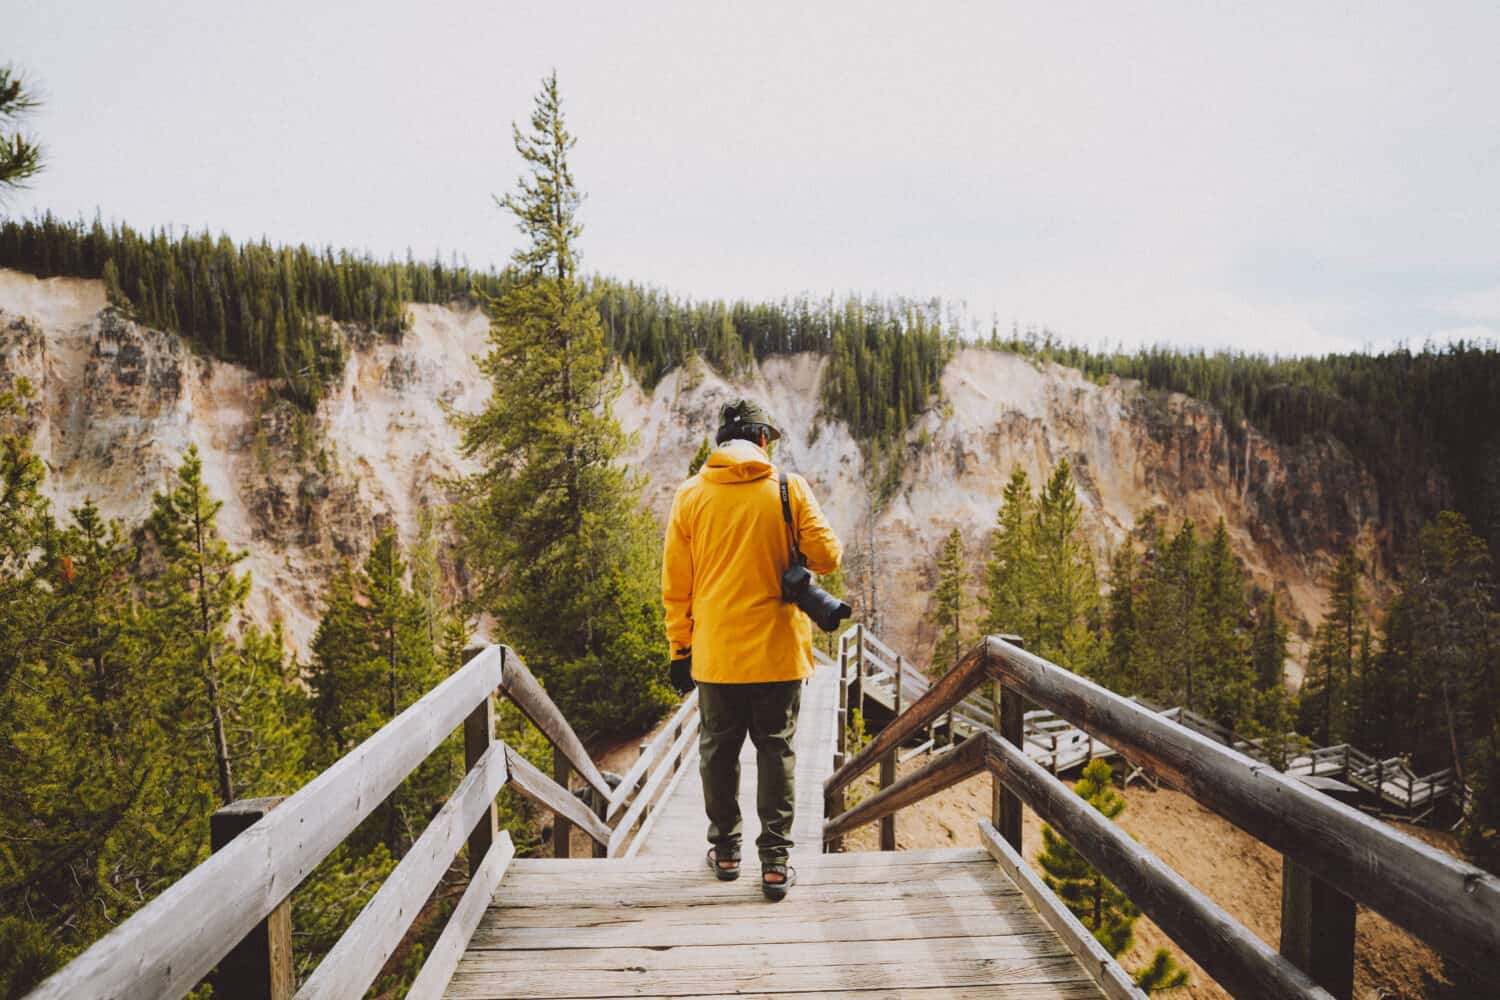 Things To Do In Yellowstone - Discover Viewpoints of Yellowstone Canyon